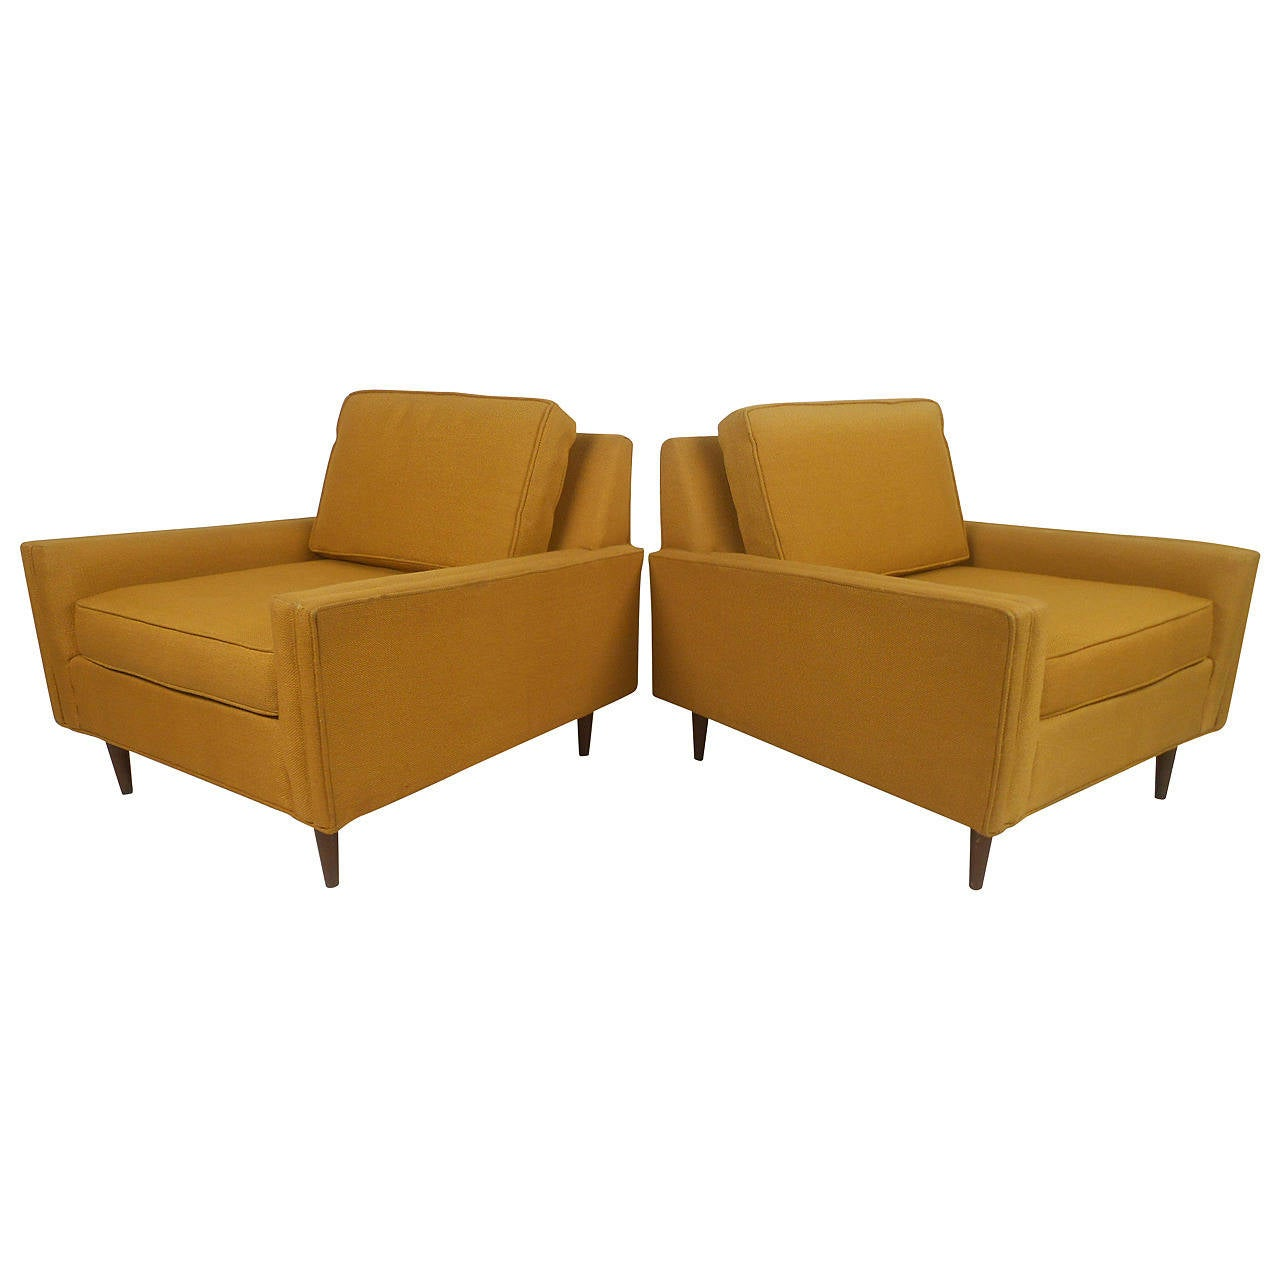 Stylish Pair of Mid Century Modern Lounge Chairs by Selig Monroe at 1stdibs